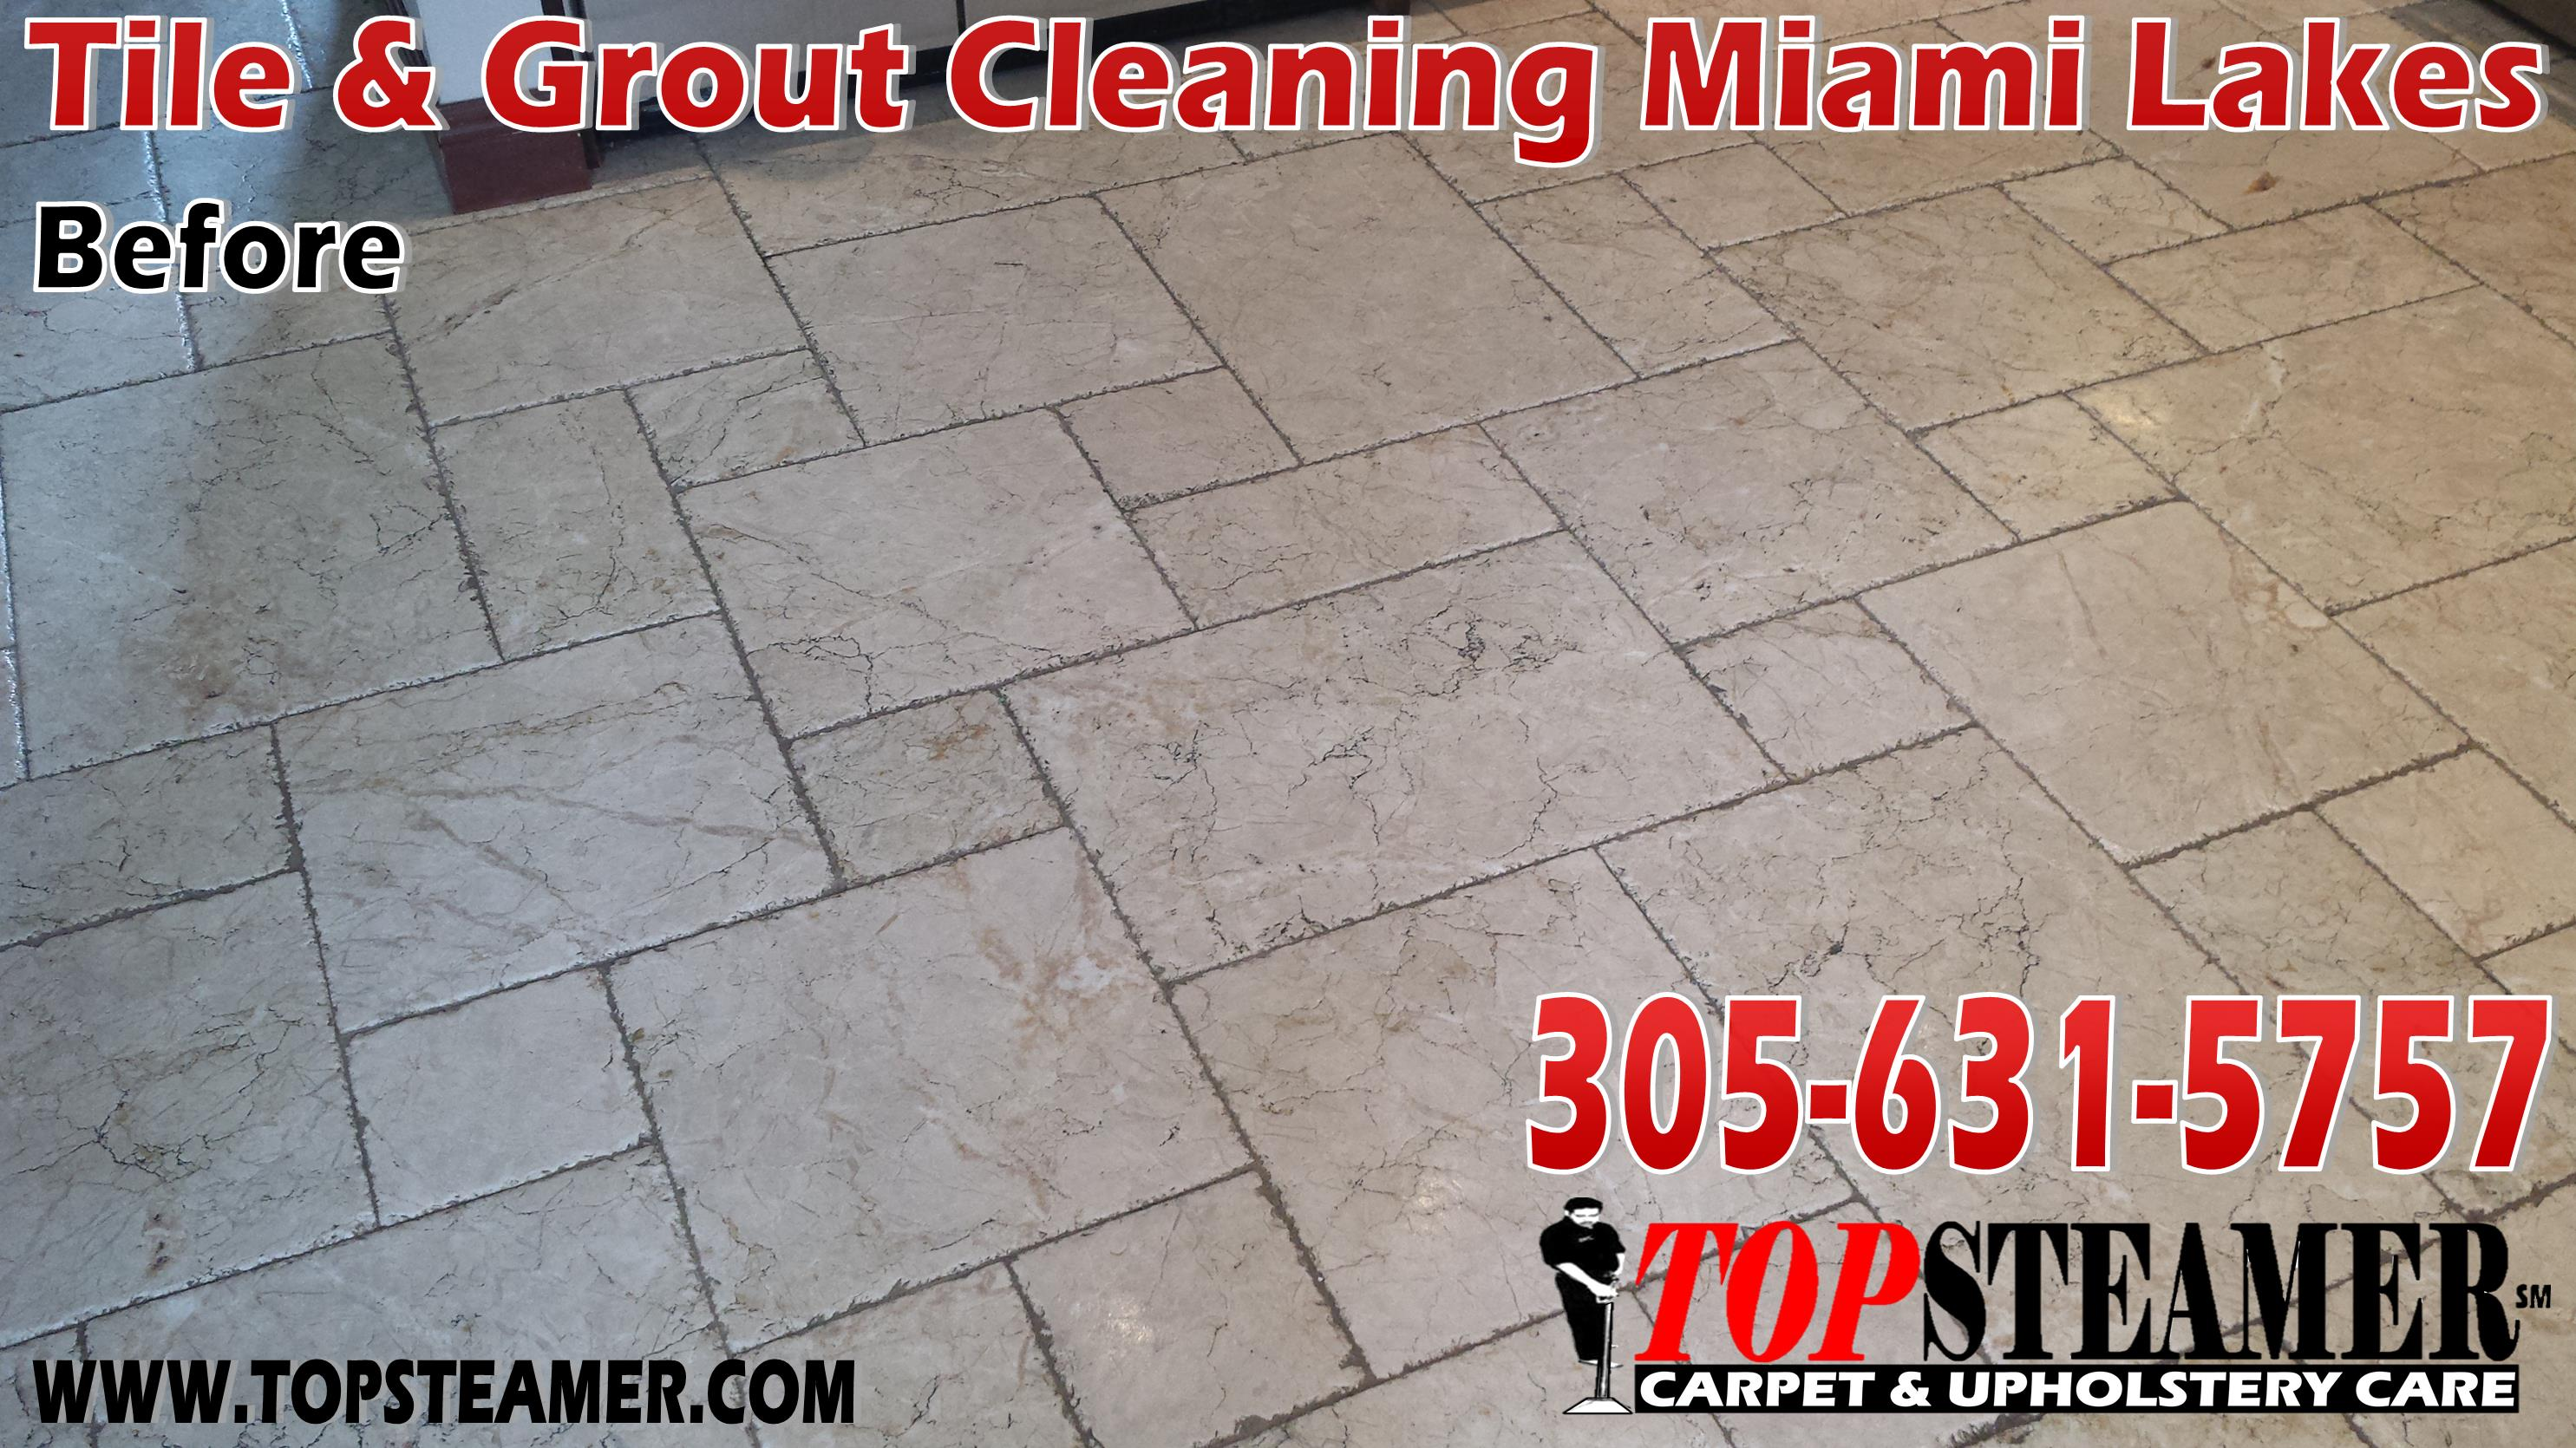 Tile And Grout Cleaning Miami Lakes 305 631 5757